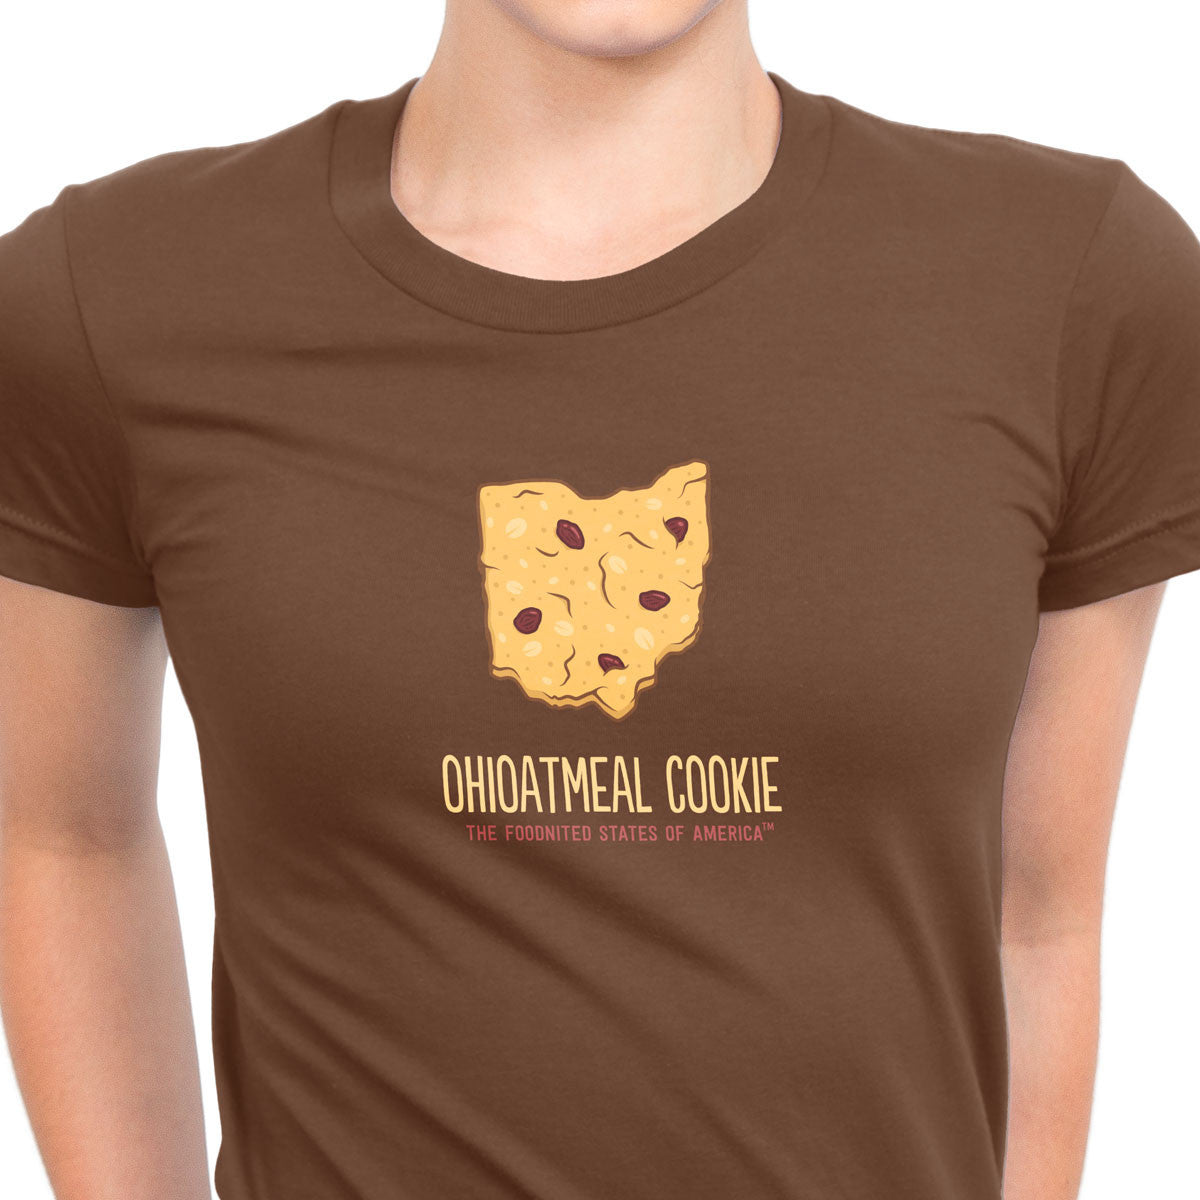 Ohioatmeal Cookie T-shirt, Women's